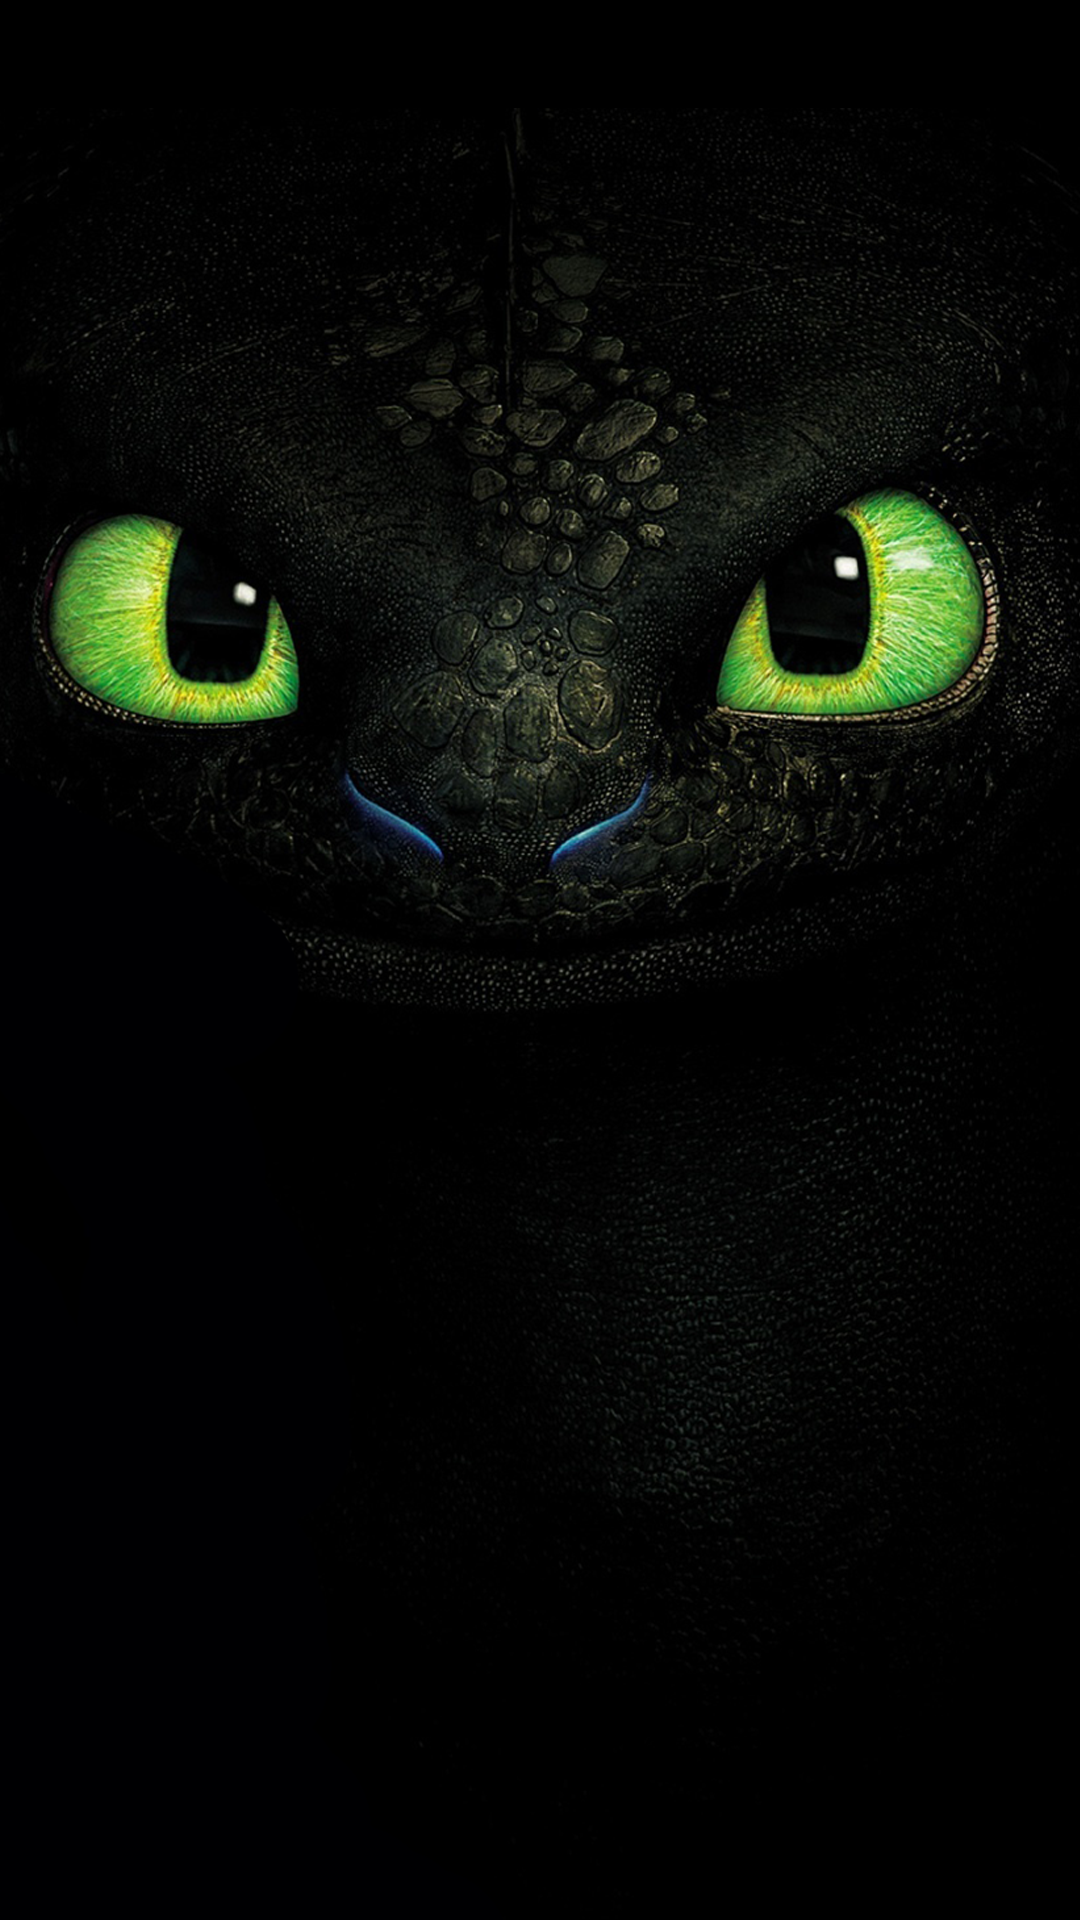 free hd toothless dragon iphone wallpaper for download 0550